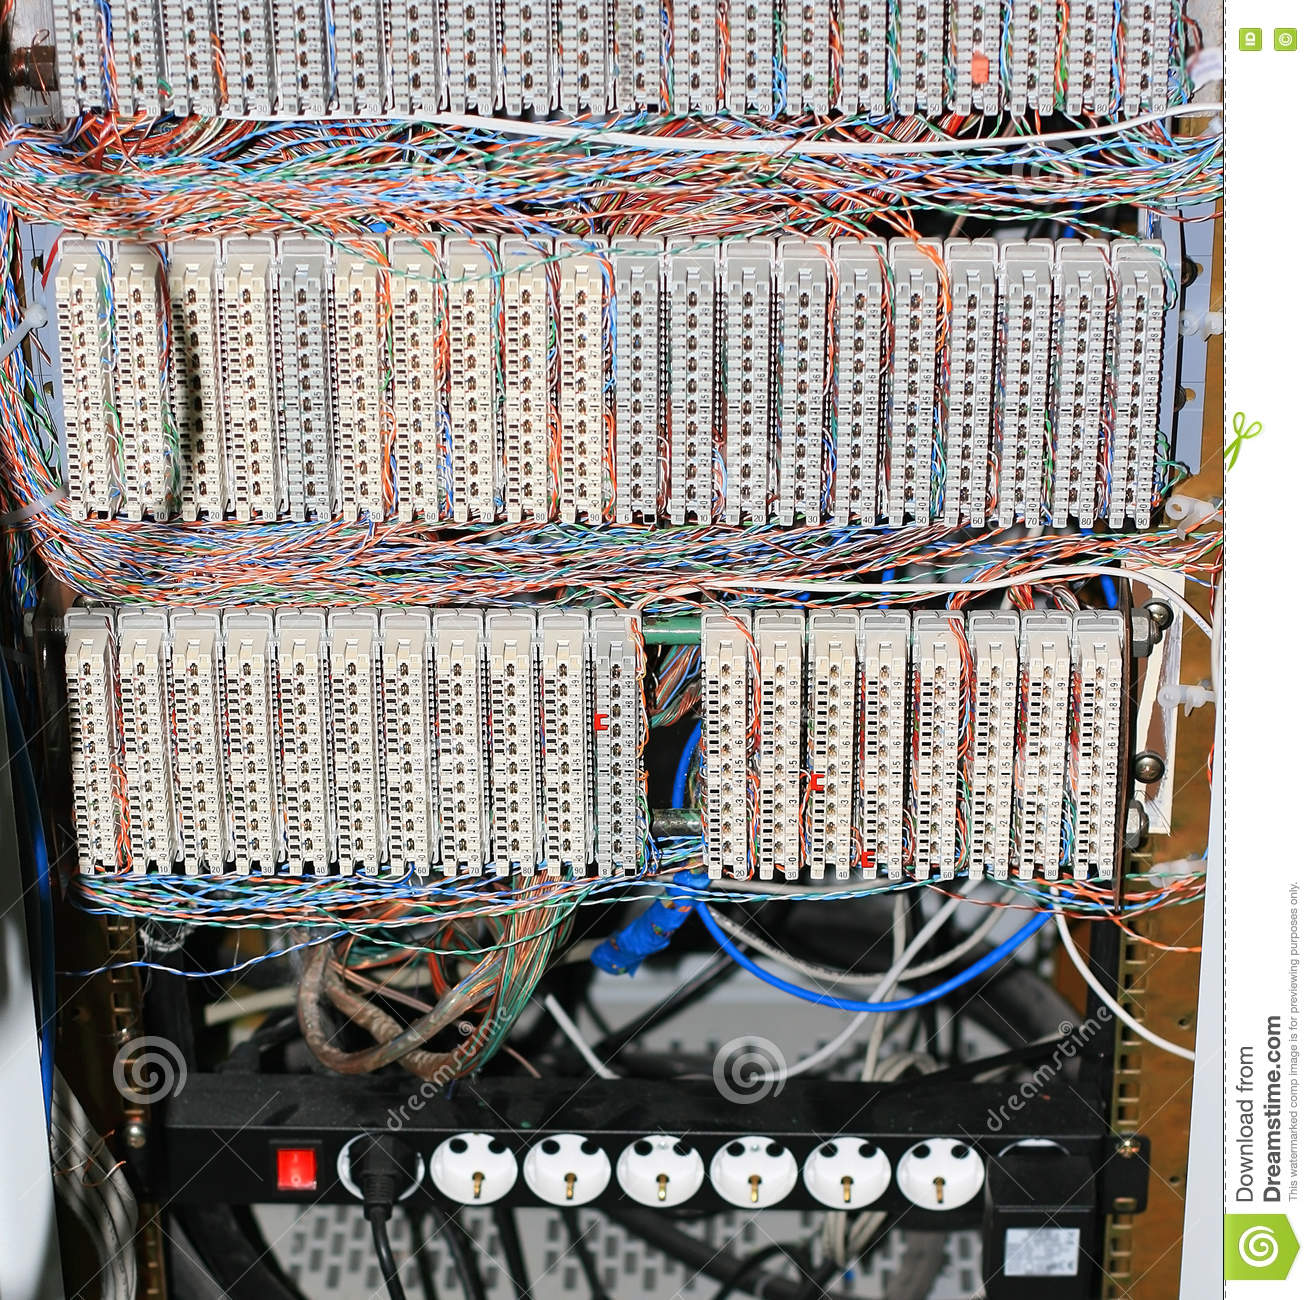 campus telephone system wiring diagram wiring closet stock image. image of jack, data, connection ...